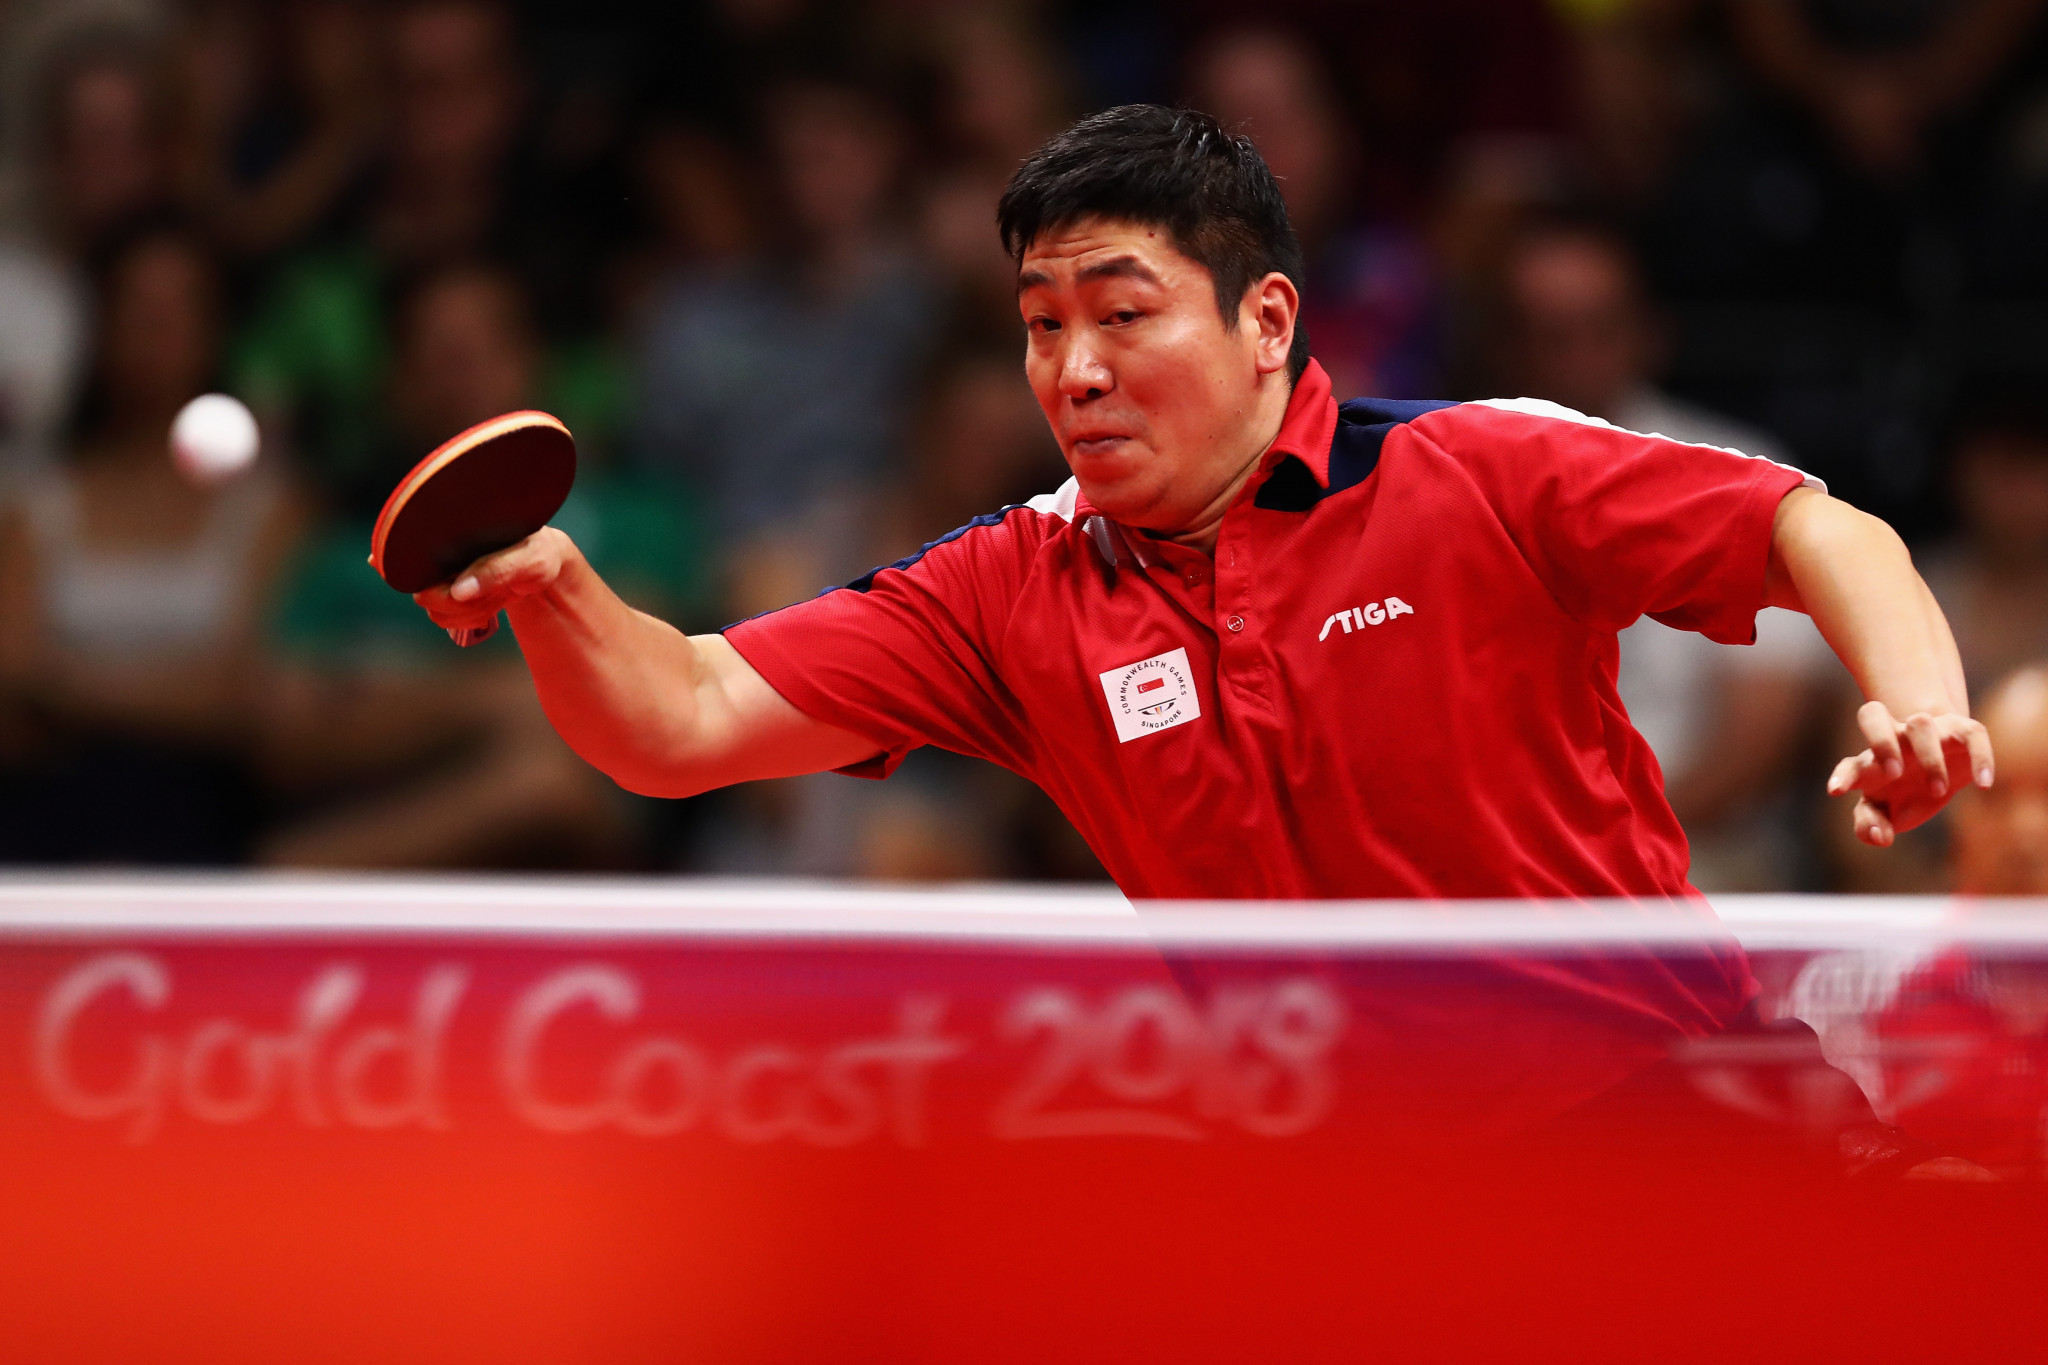 Gao secures elusive singles gold and mixed doubles title on final day of table tennis at Gold Coast 2018